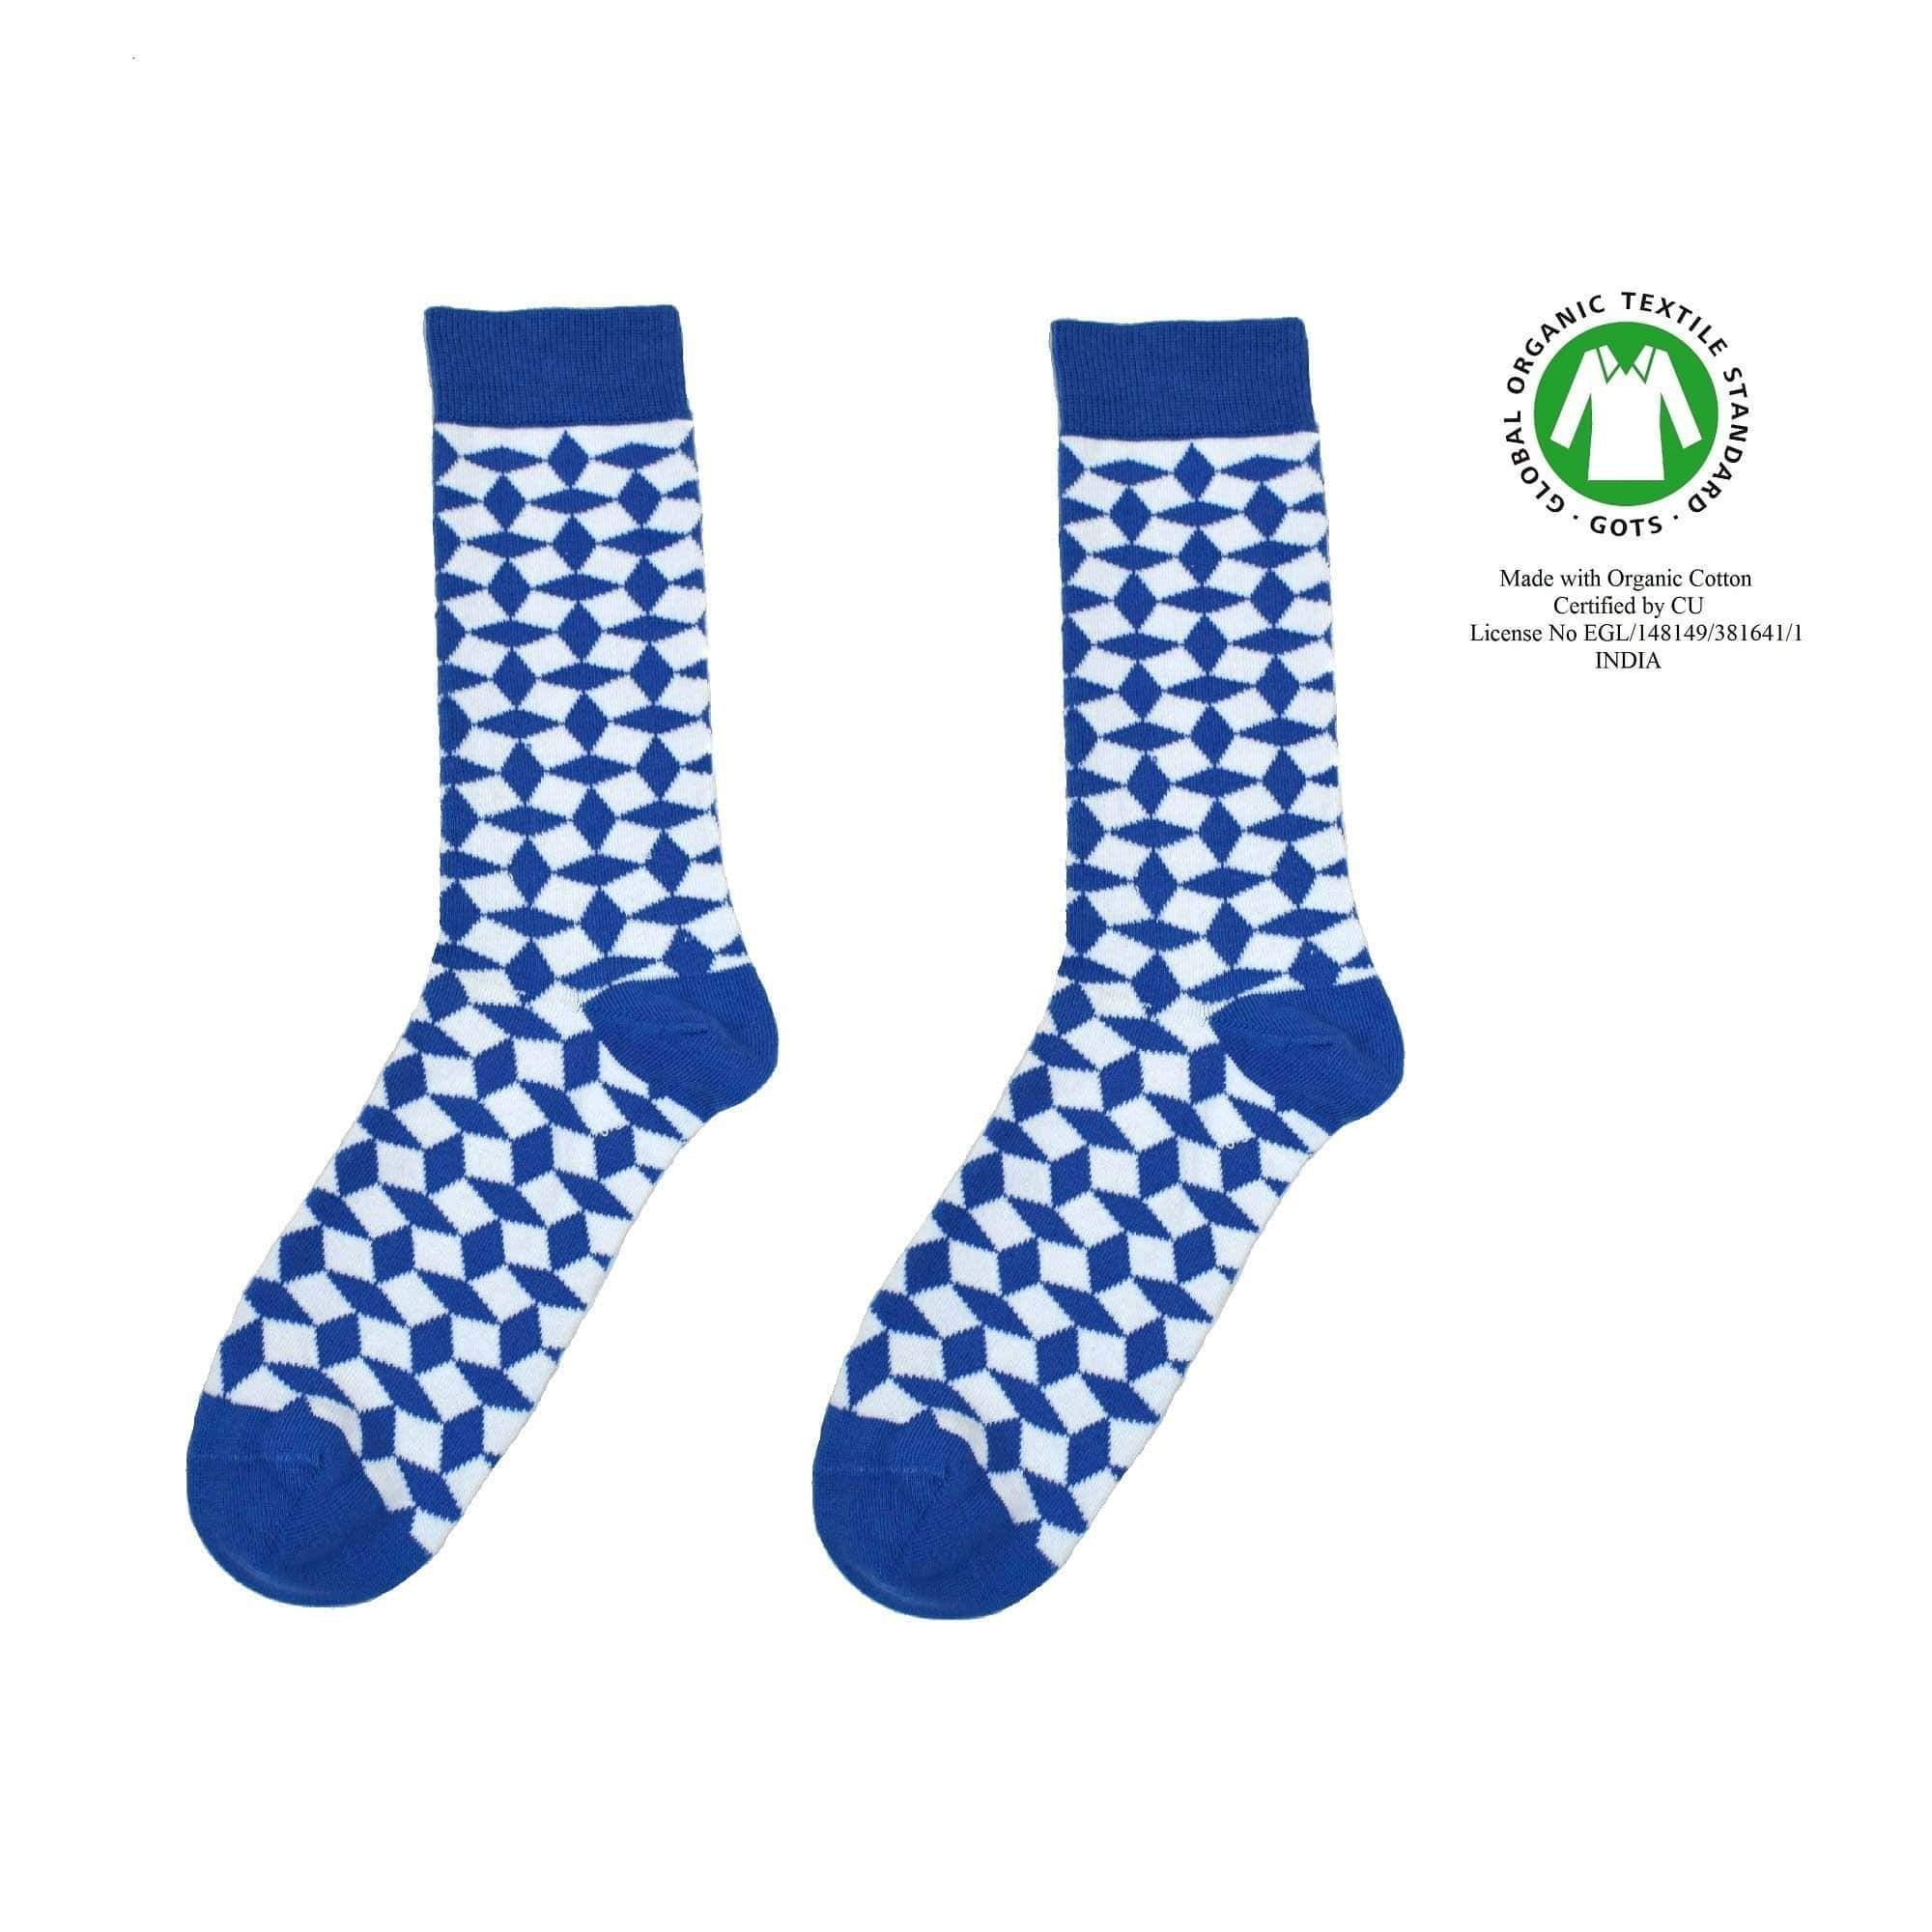 Organic Socks of Sweden sock Nyström Socks. Organic Cotton. sustainable fashion ethical fashion